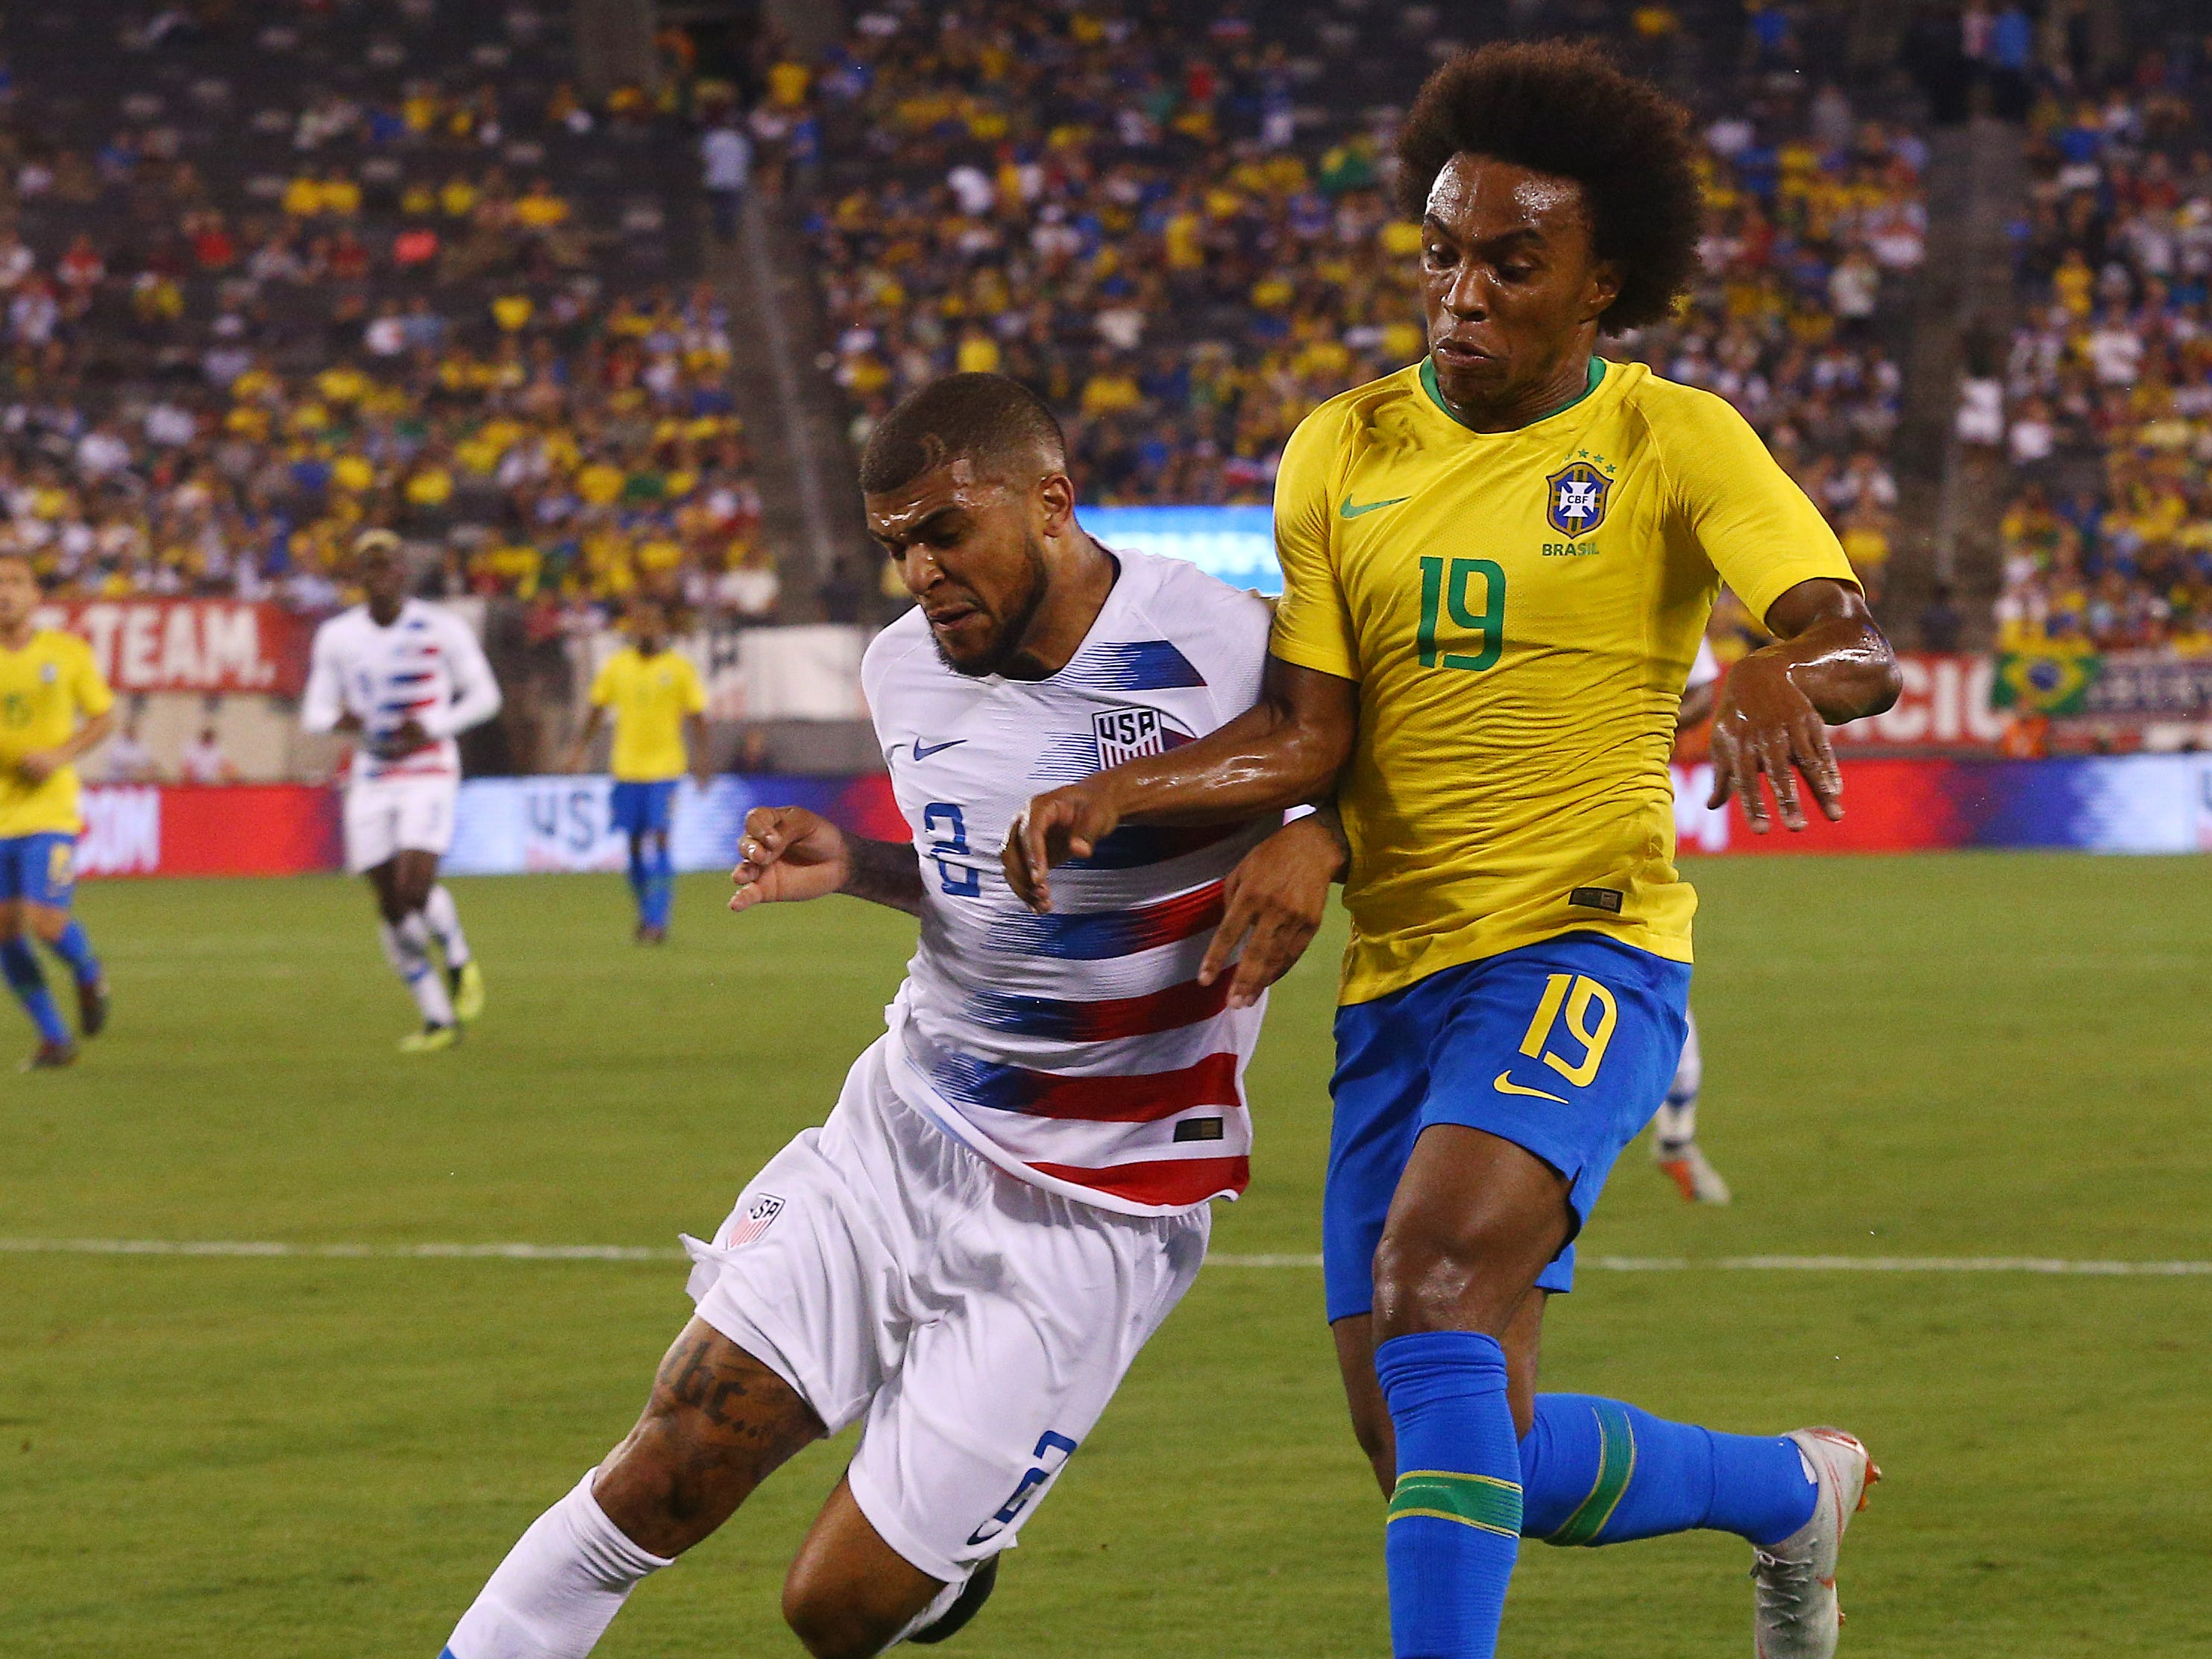 U.S. Men's National Team's DeAndre Yedlin defends on Brazil's Willian during their international friendly at MetLife Stadium in East Rutherford, N.J. The US was defeated 2-0 by the five-time World Cup champions. September 7, 2018, East Rutherford, NJ